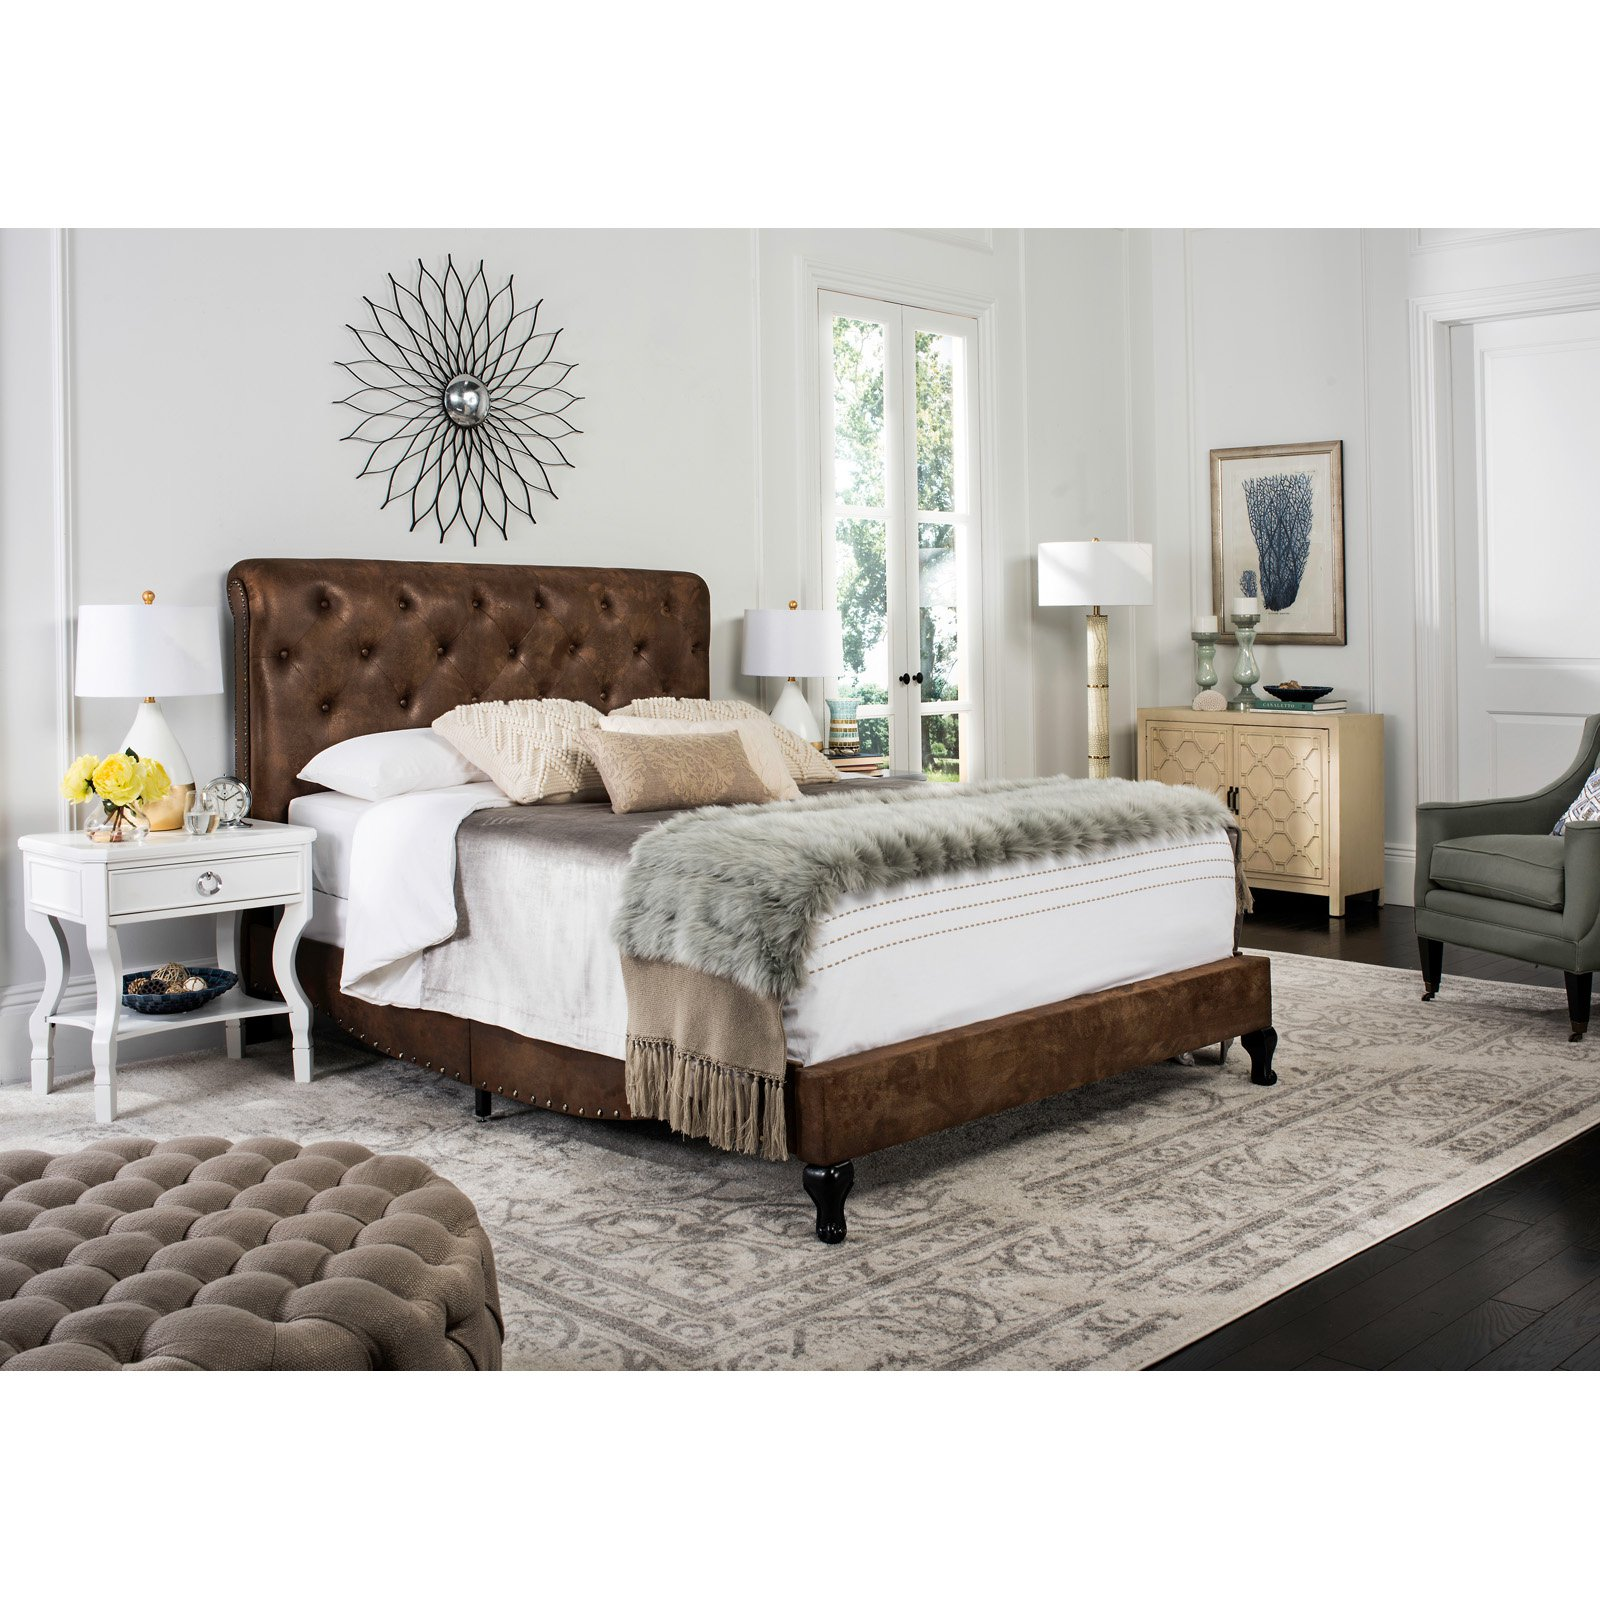 Safavieh Hathaway Bed with Nail Heads